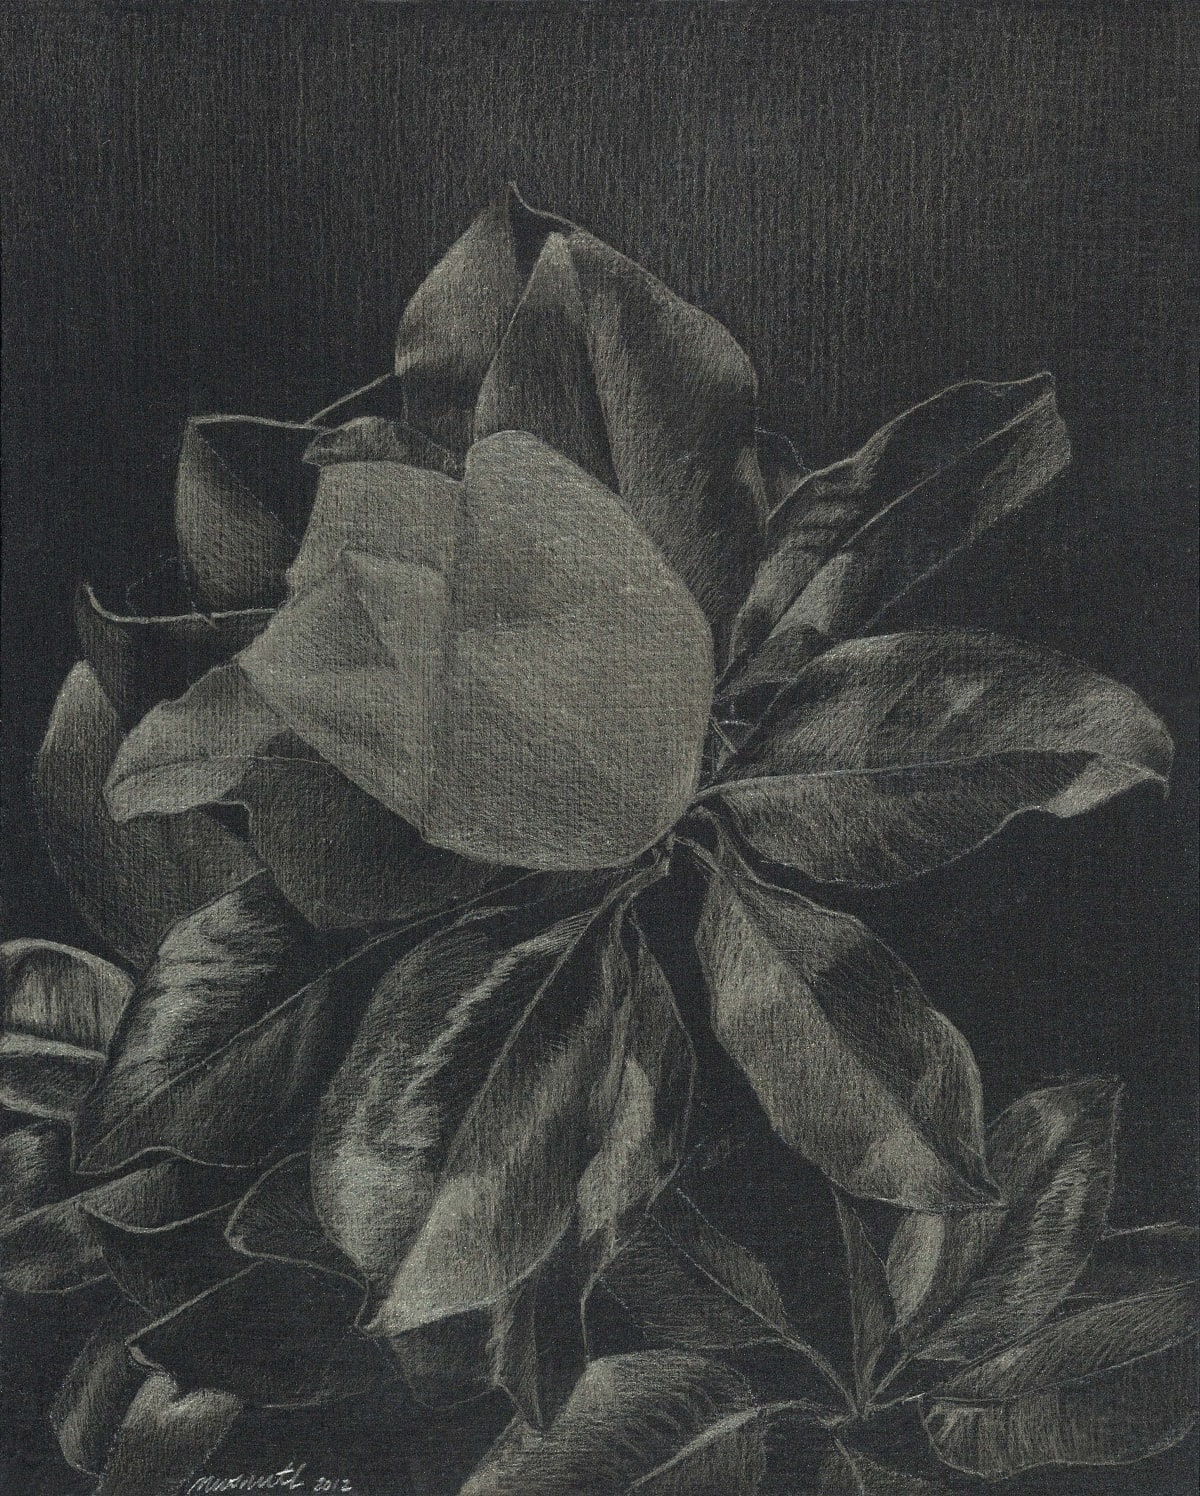 "Marjorie Williams-Smith Magnolia, 2012 Silverpoint on black acrylic gesso 5 1/8"" x 4 1/8"""